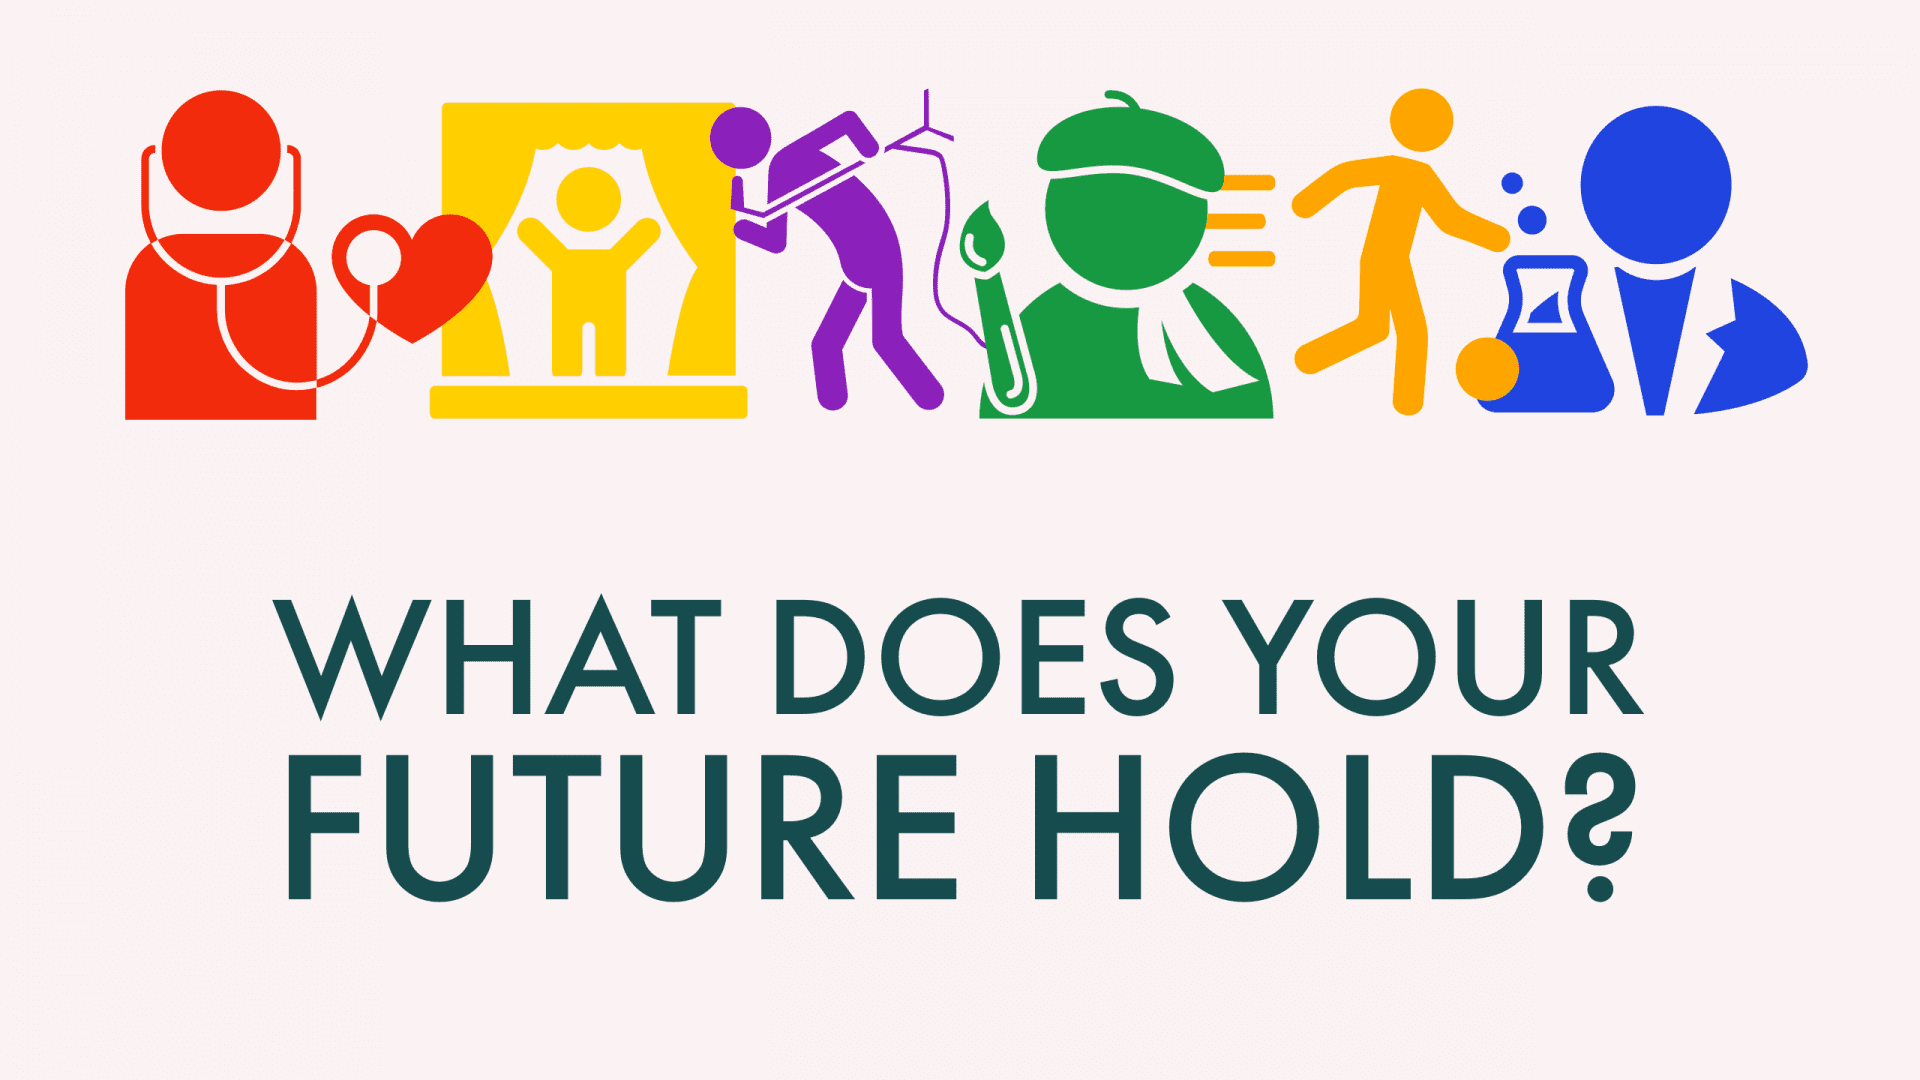 """stick figures in various colors representing a doctor, actor, singer, artist, athlete, and scientist. text reads """"What does your future hold?"""""""